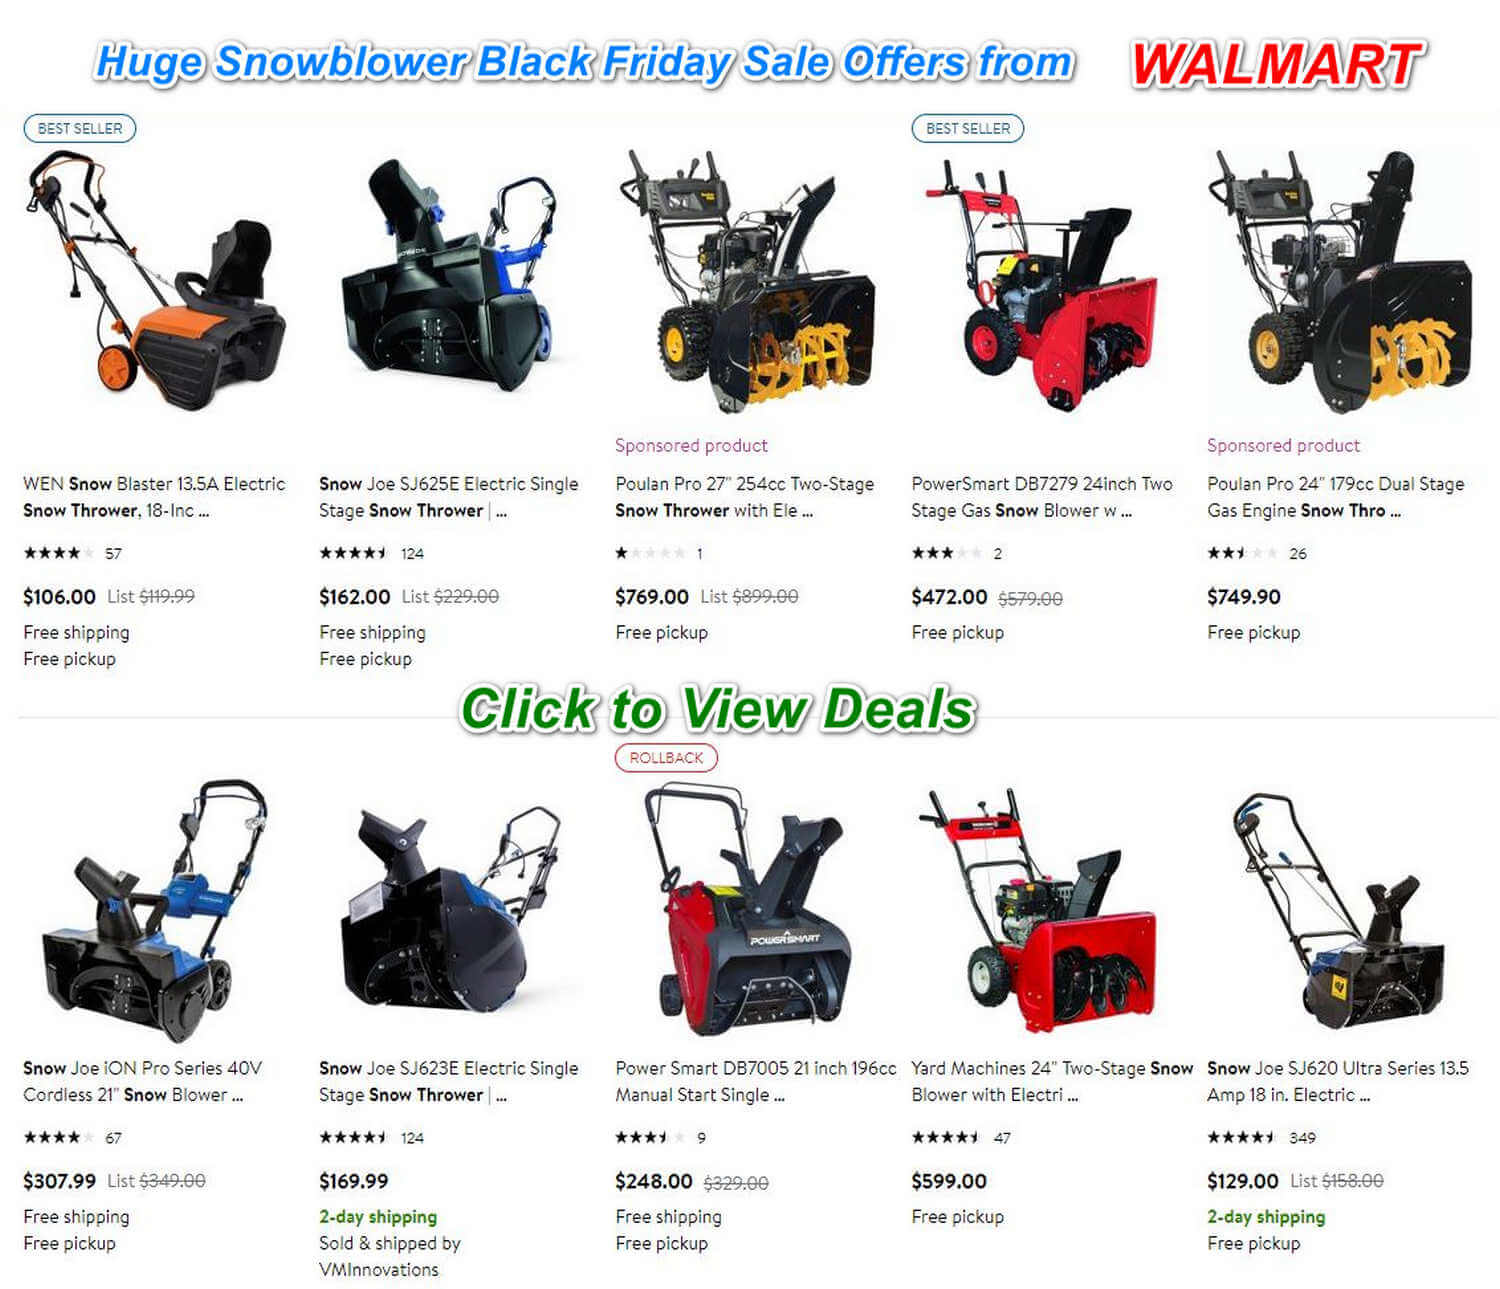 snowblower-black-friday-sales-walmart